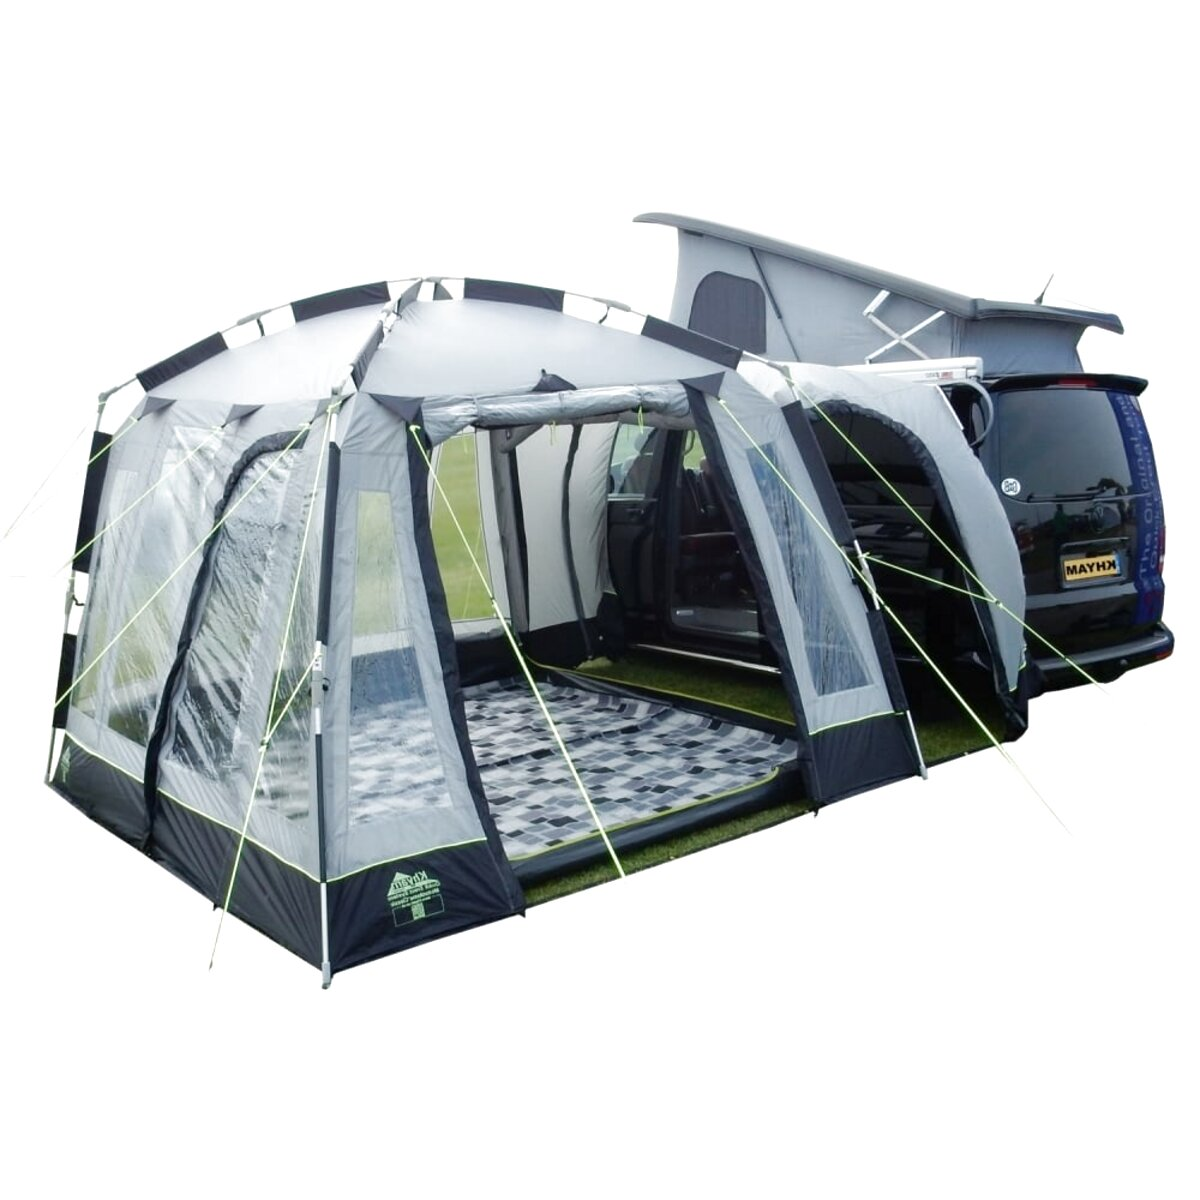 Second hand Khyam Awning in Ireland | View 12 bargains